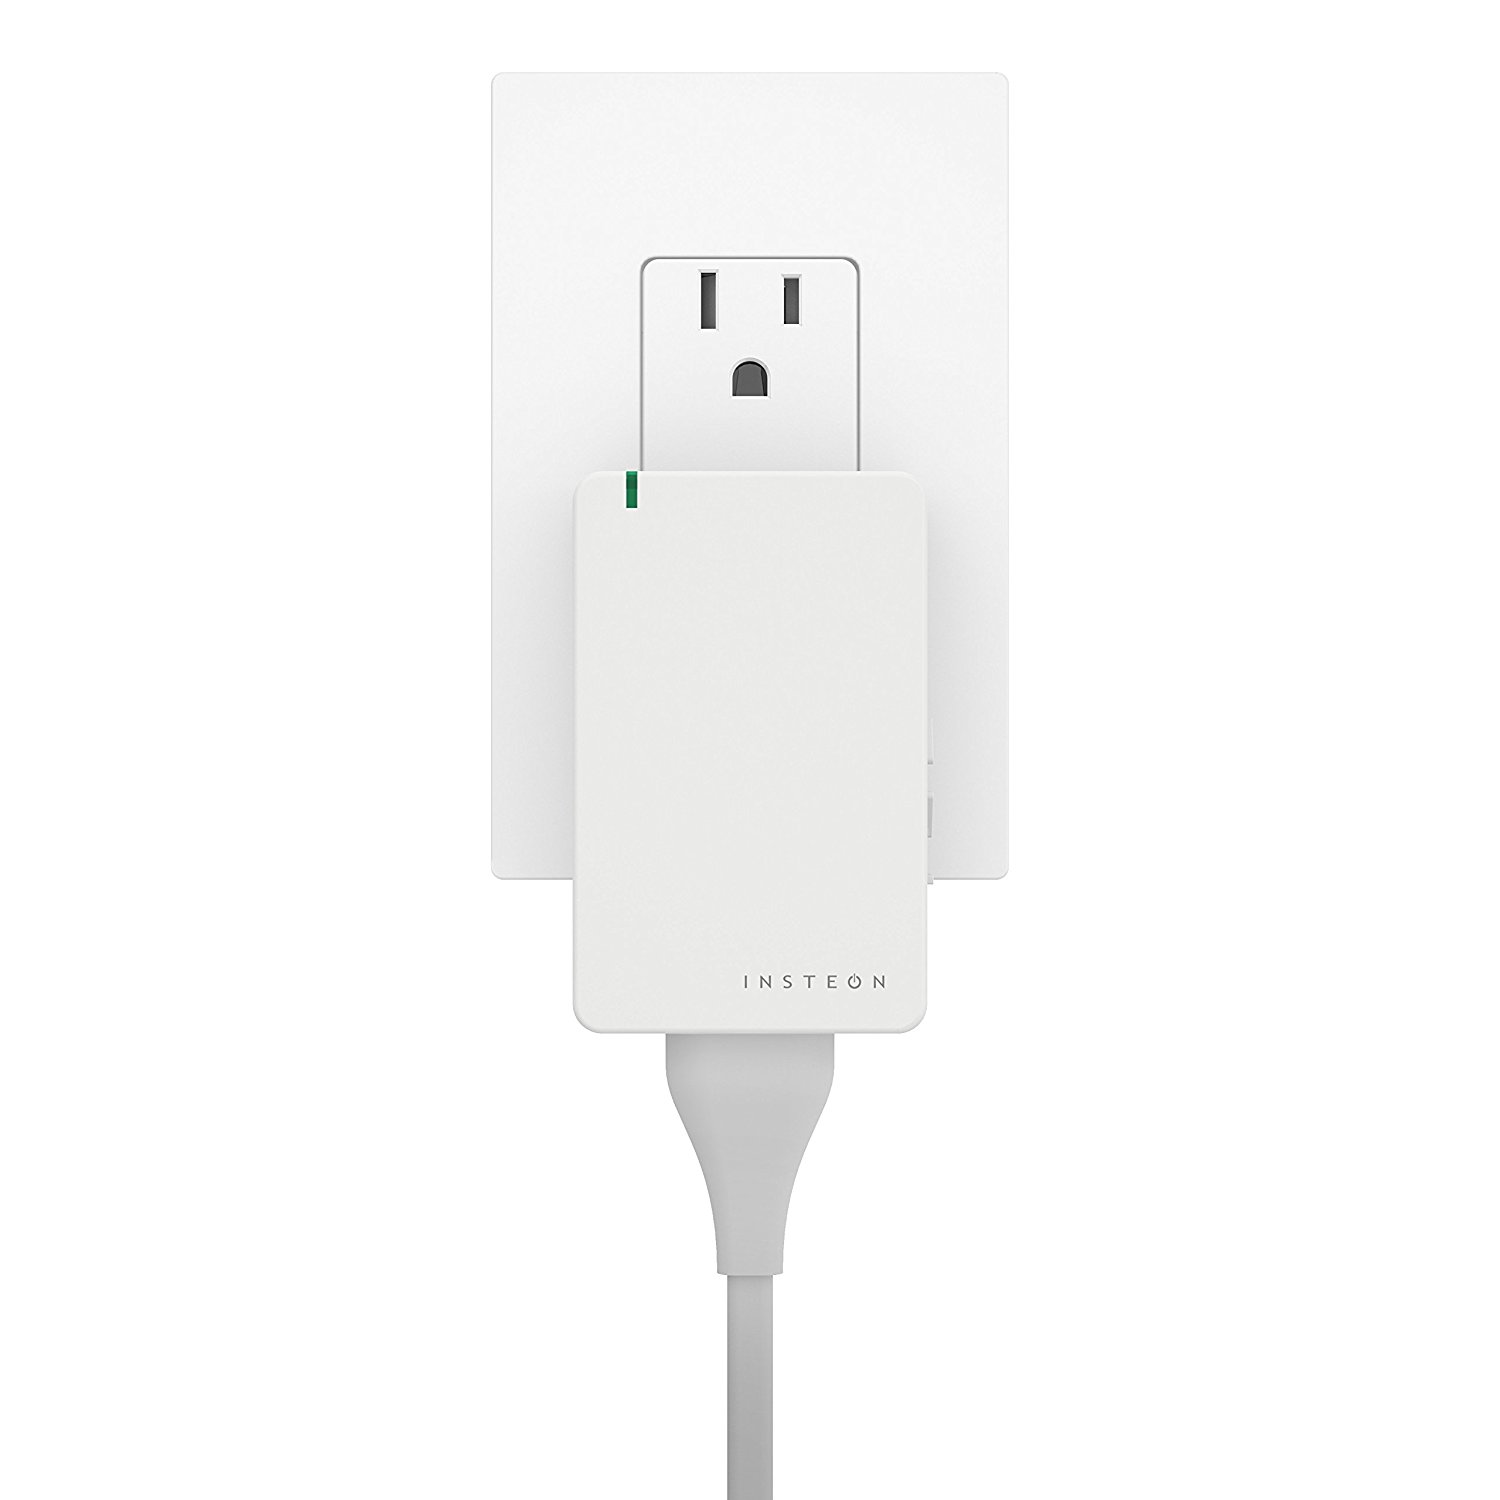 Insteon LampLinc Smart Plug Works with Amazon Alexa